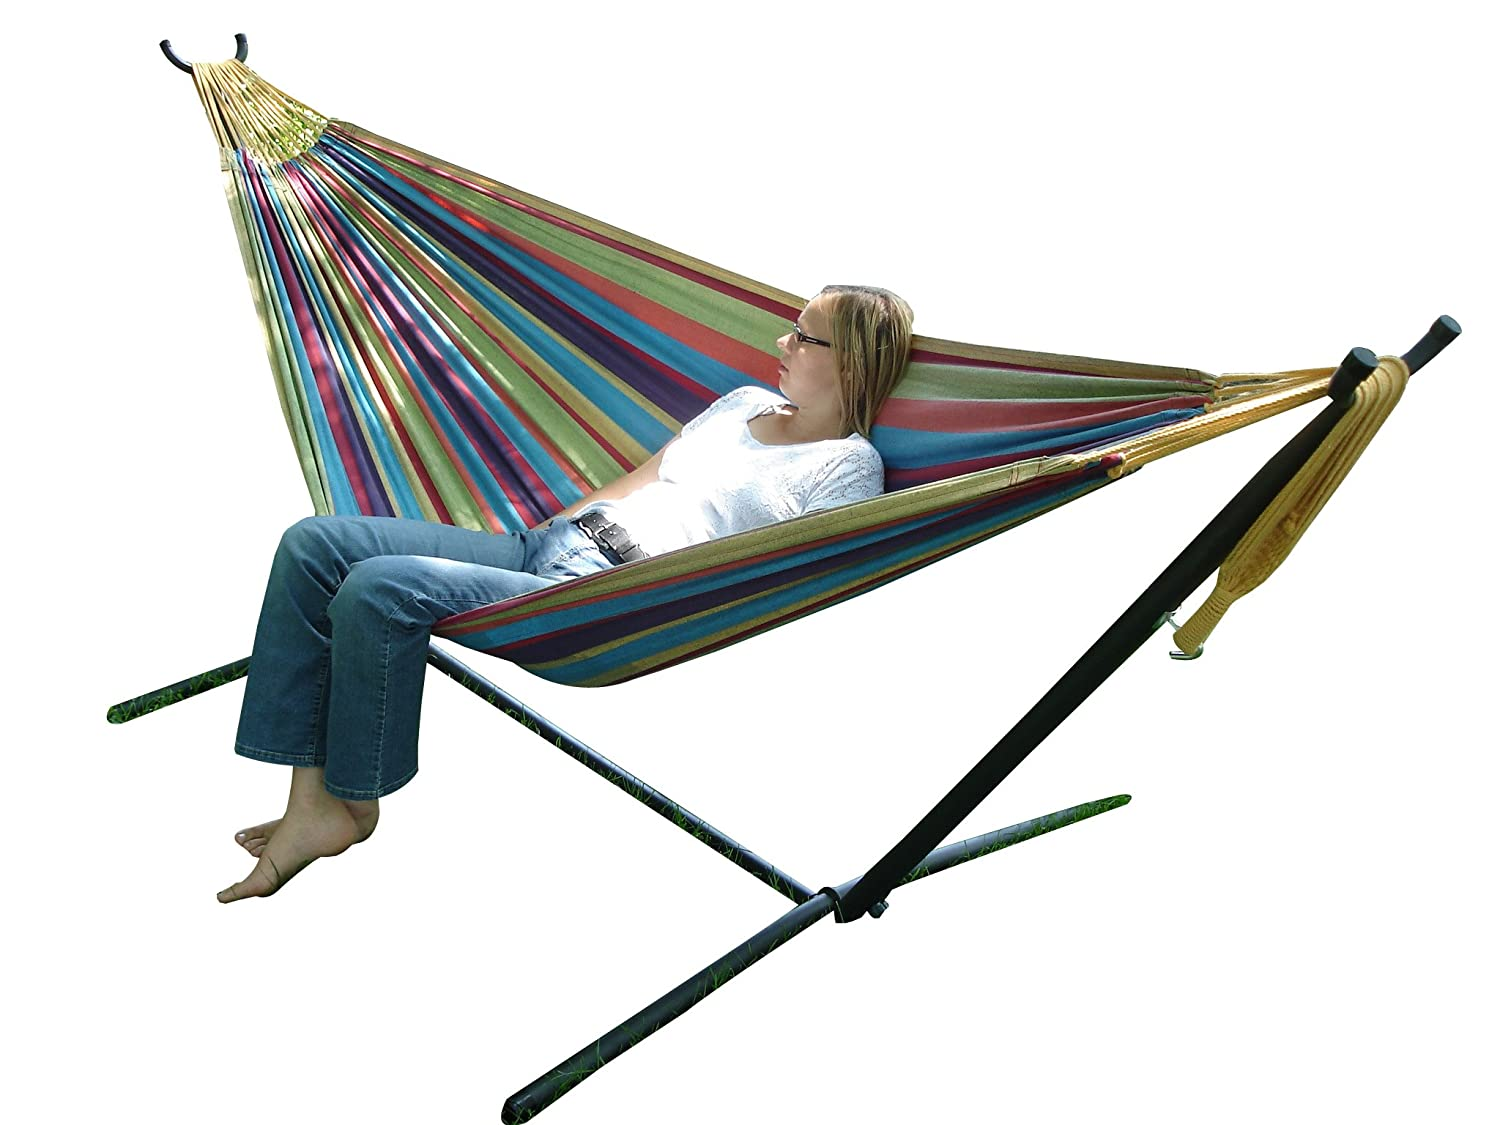 Vivere UHSDO9 Double Hammock with Space-Saving Steel Stand $94.90